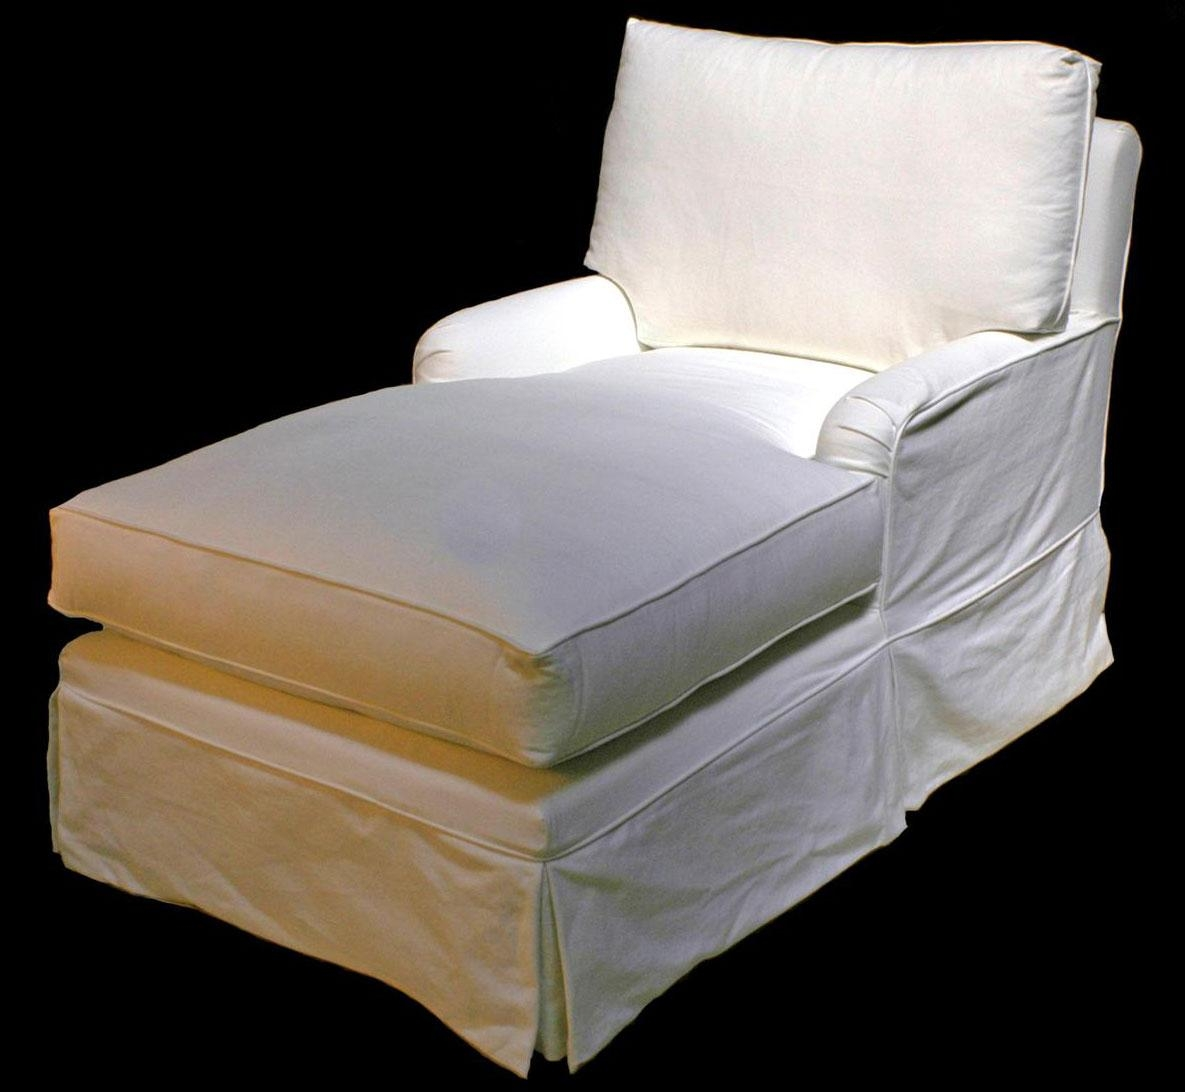 Cottage Haven Collection – Slipcovered & Upholstered – Chaises Within Slipcovered Chaises (Image 9 of 20)